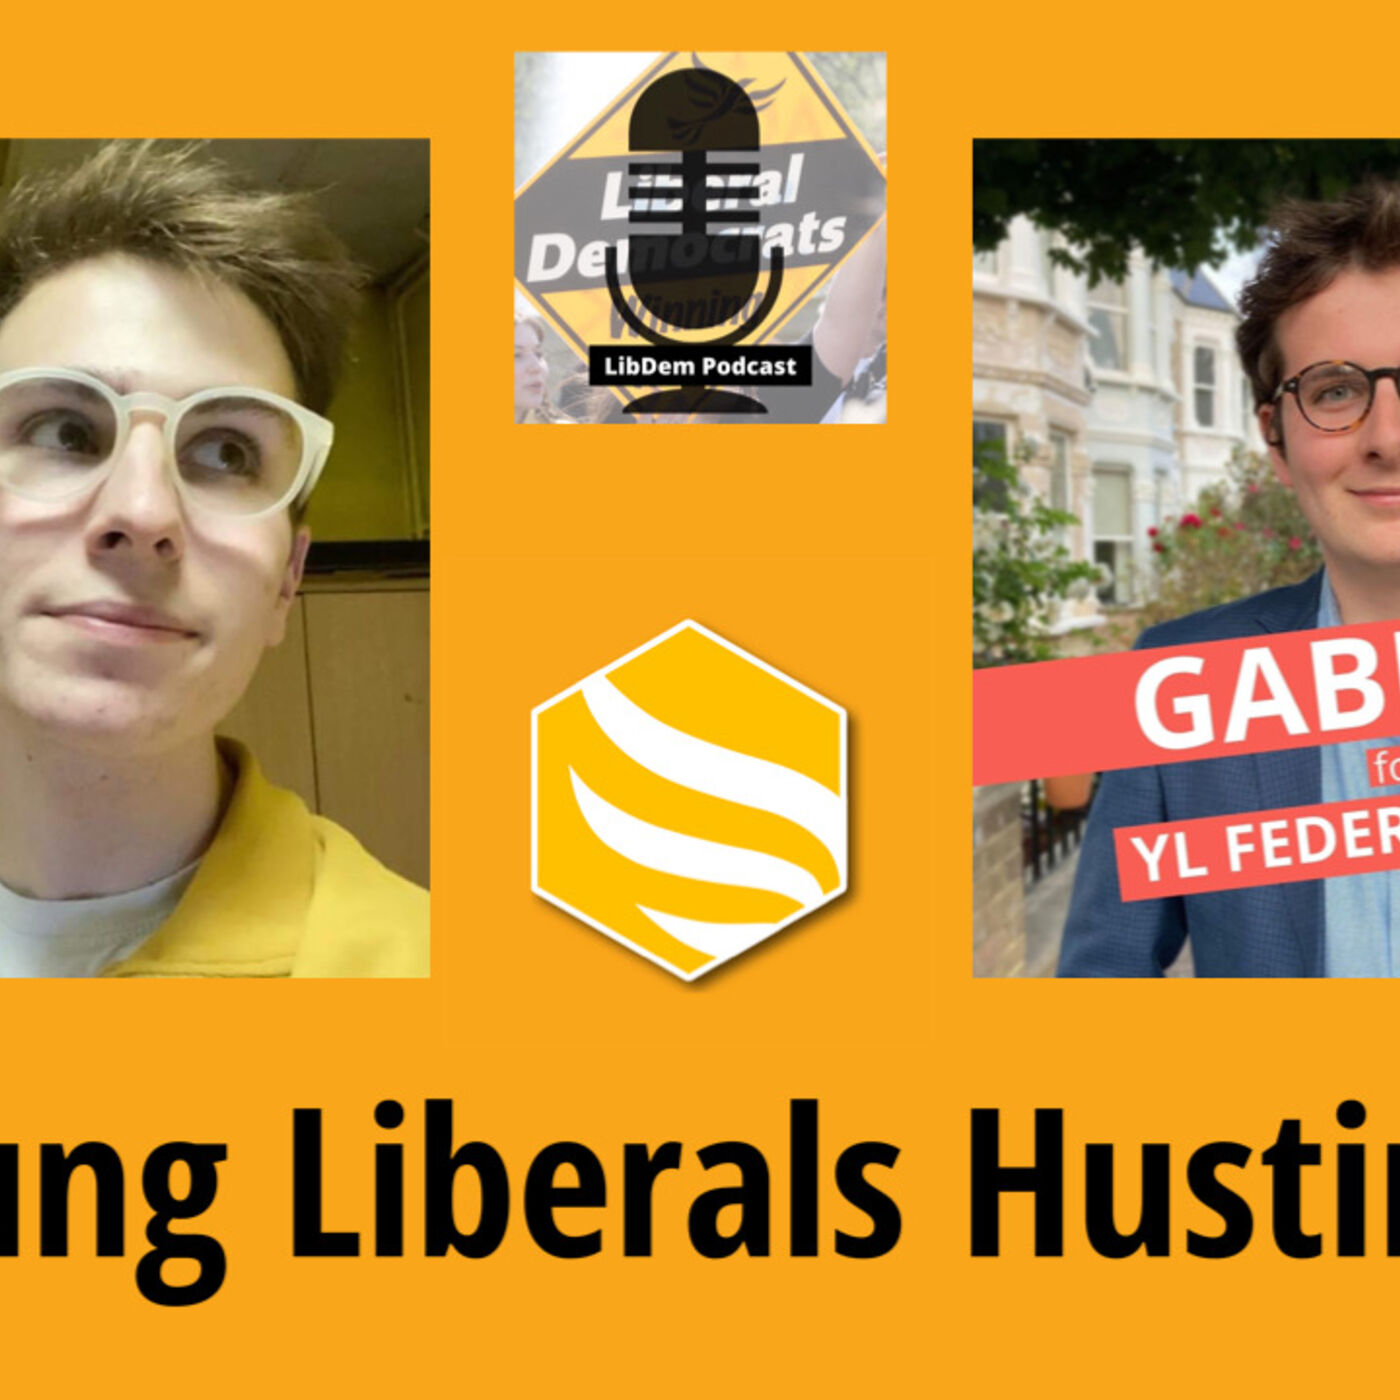 Where Next for Young Liberals? - the Young Liberals Husting